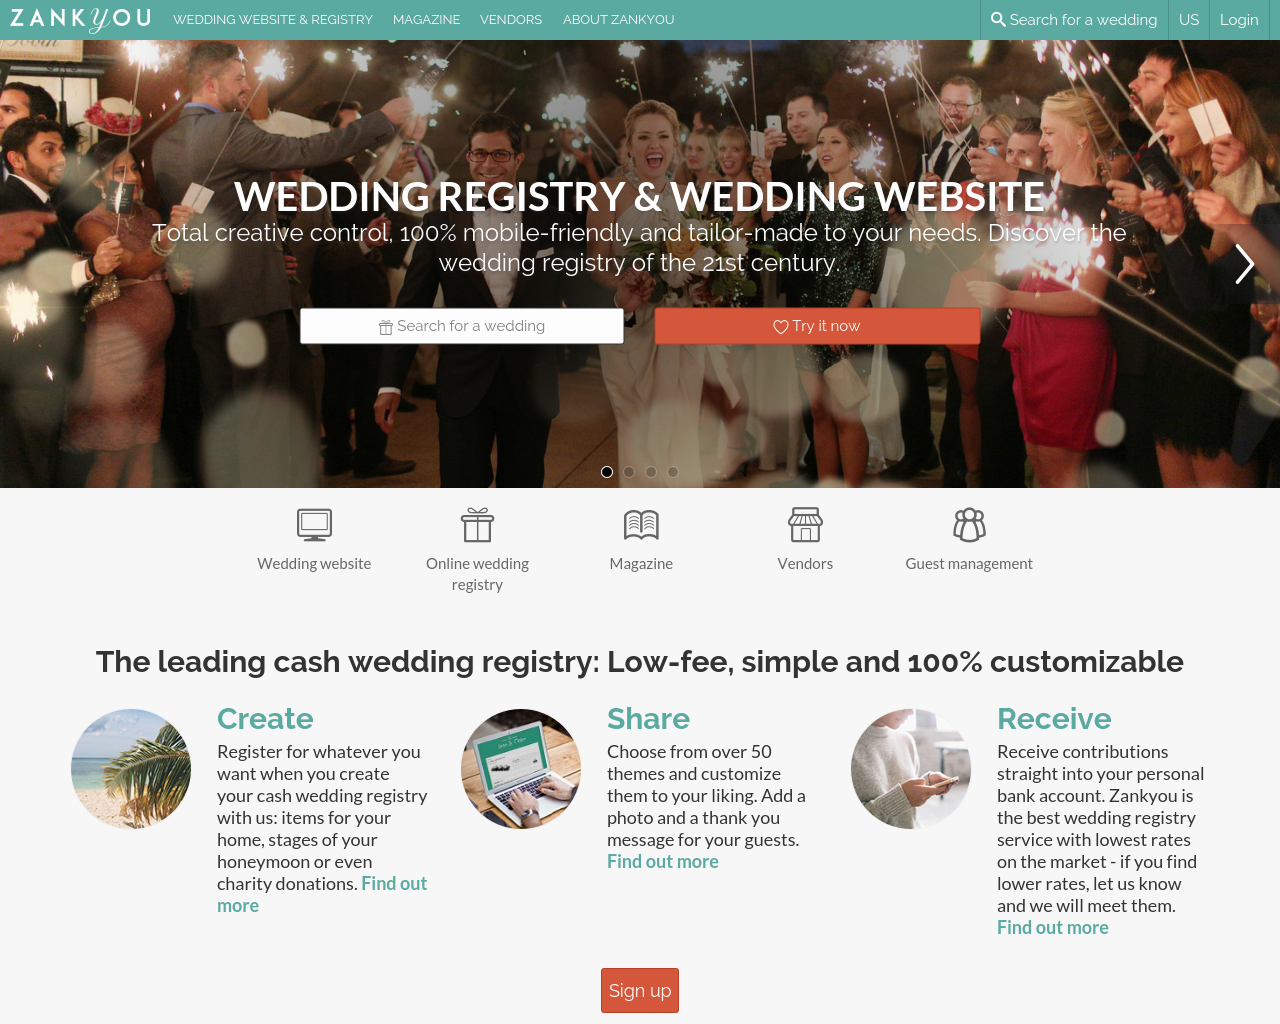 Zankyou-Weddings-Advertising-Reviews-Pricing